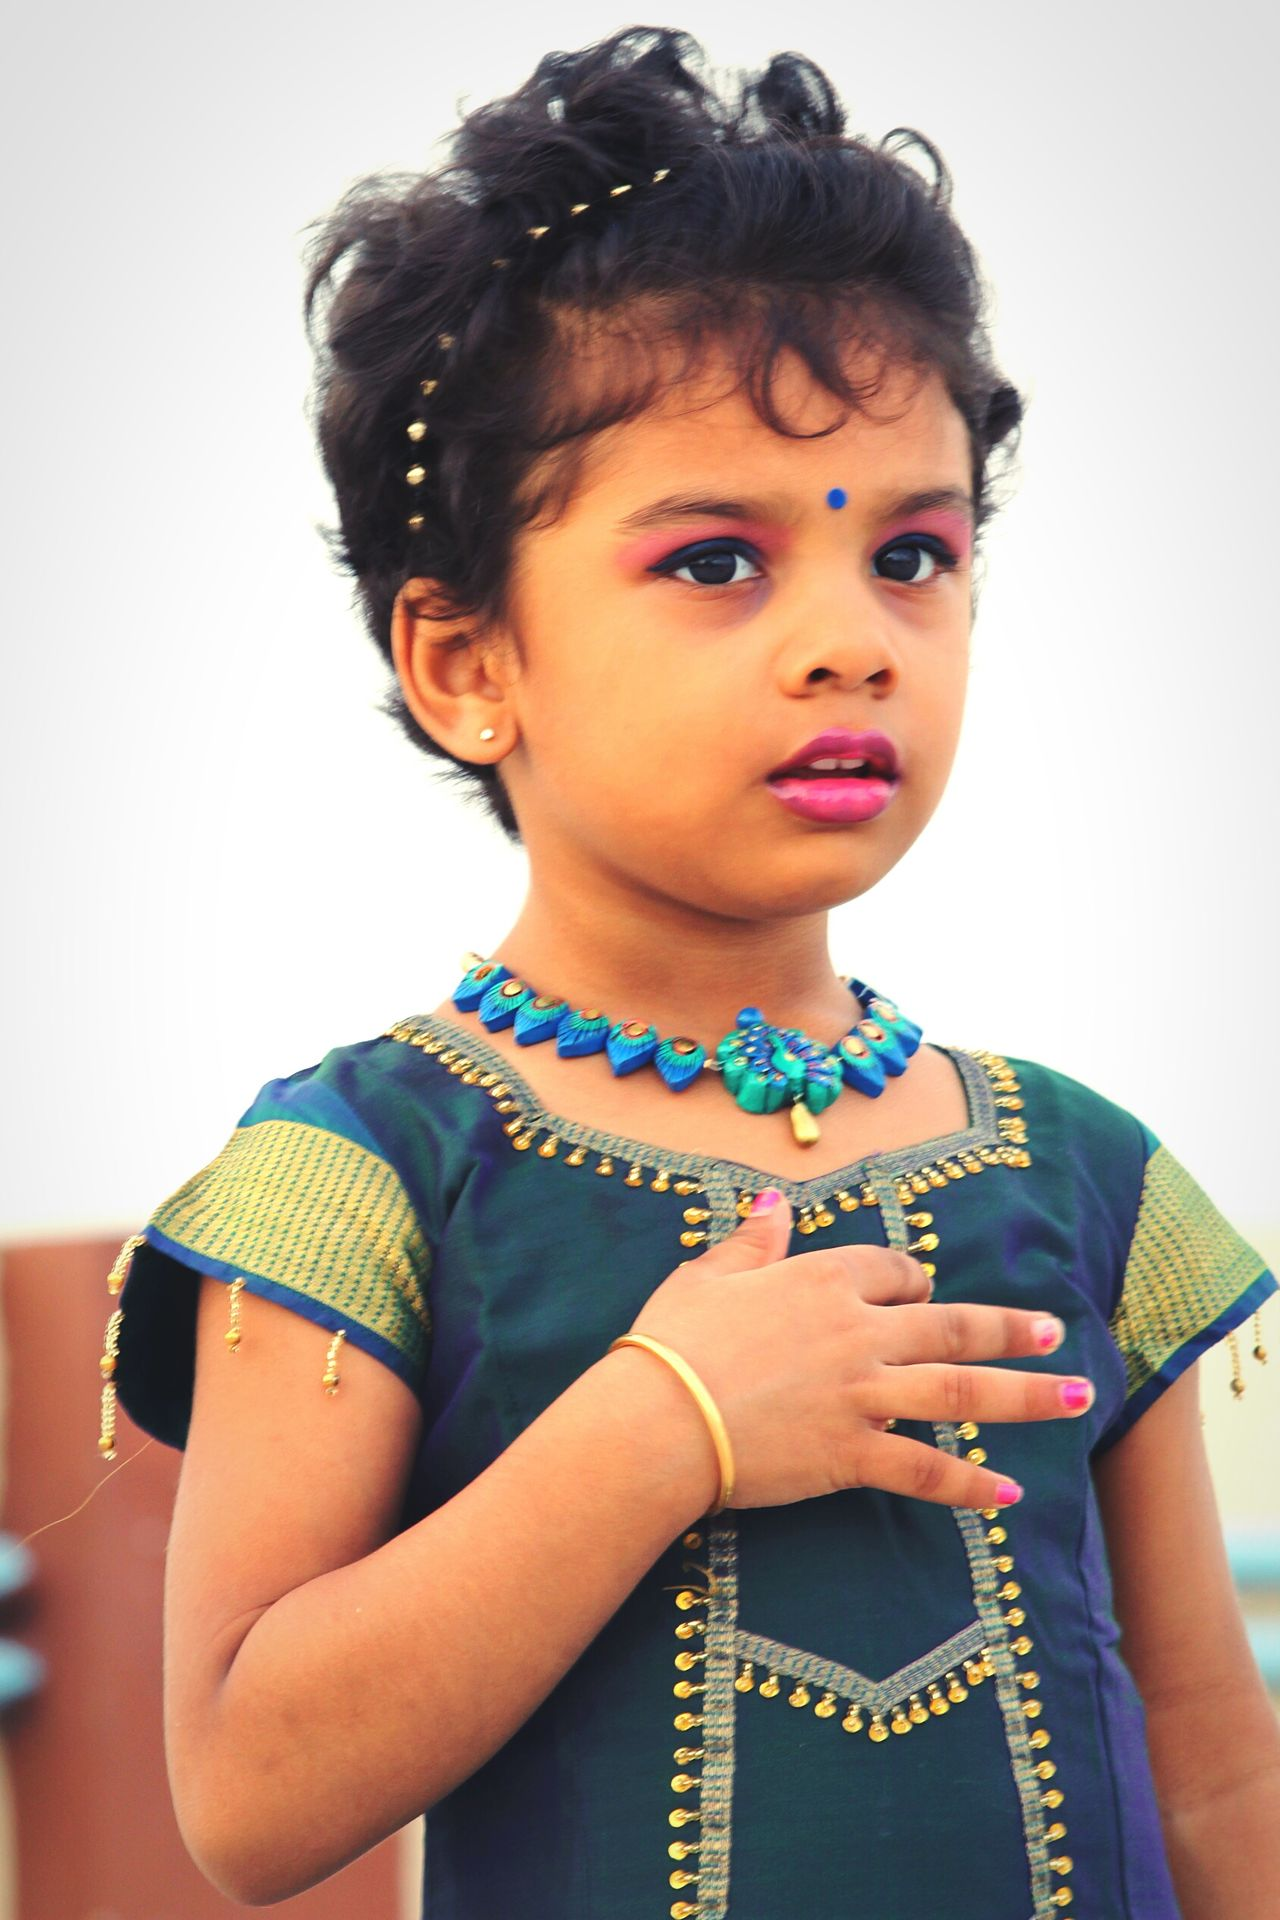 Kidsphotography Kids Portrait Childmodel Indiankids Indian Style Indian Culture  Indianclothing Traditional Ethnicwear Ethnic Terracotta Jewellery.. Terracotta Clay Jewellery Pottery Jewelry Handmade Jewellery Mayuriterracotta Handmade Accessories Handmadejewelry Handmadewithlove Handmadebyeme